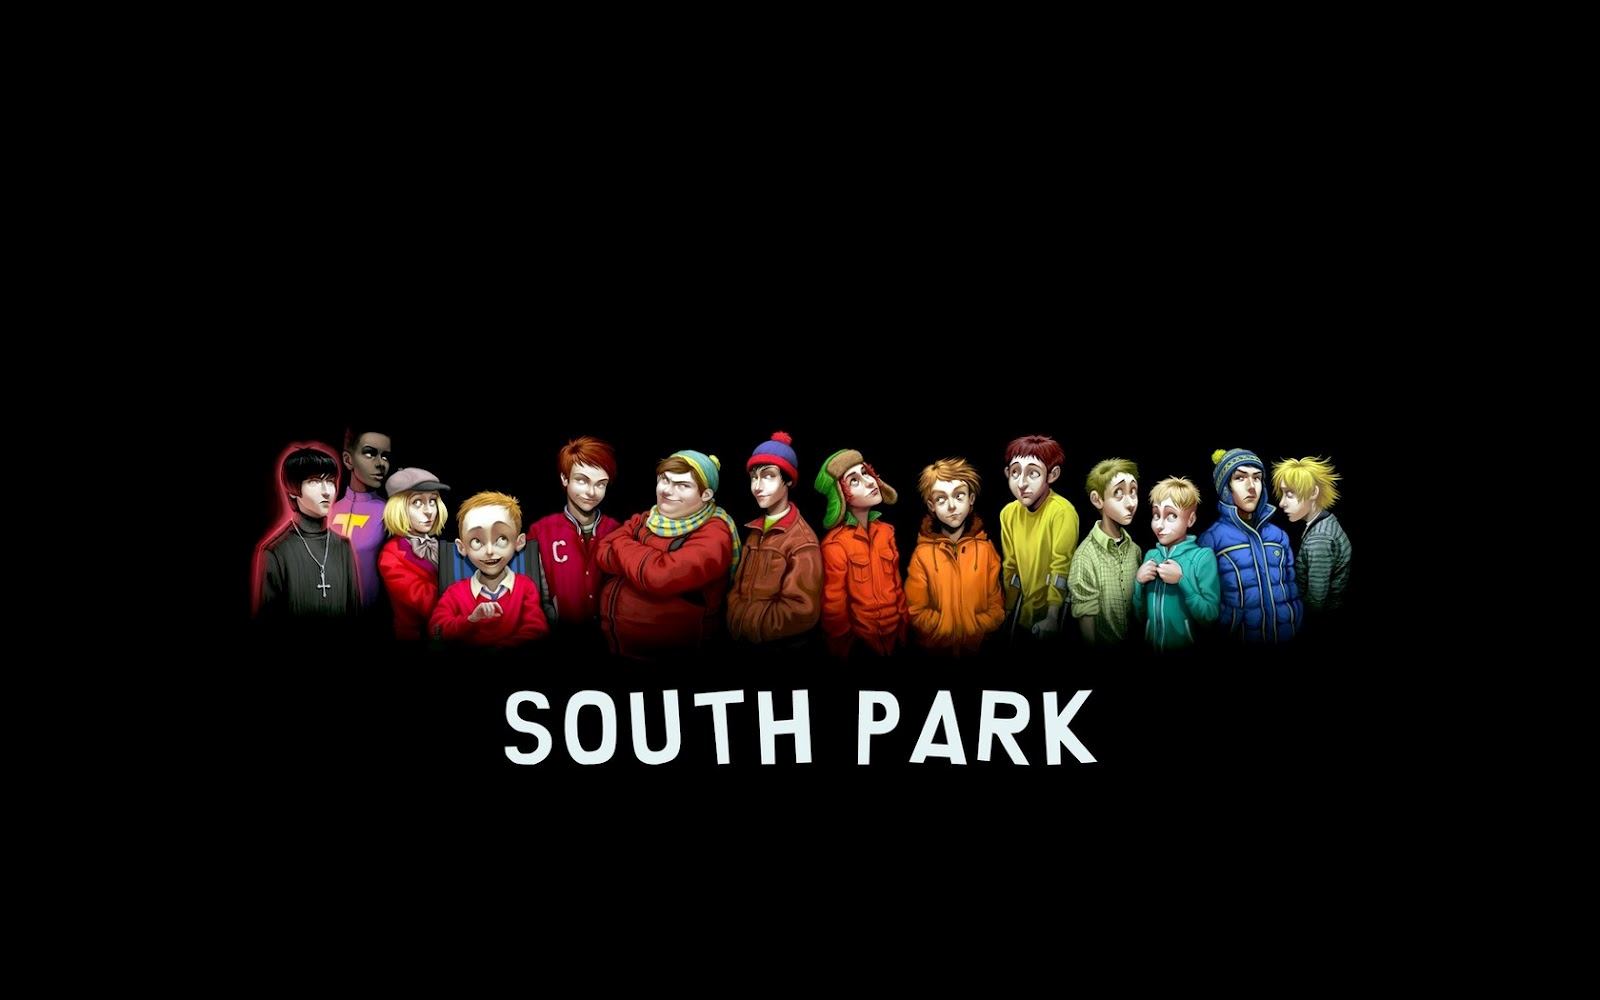 south park phone wallpaper - photo #30